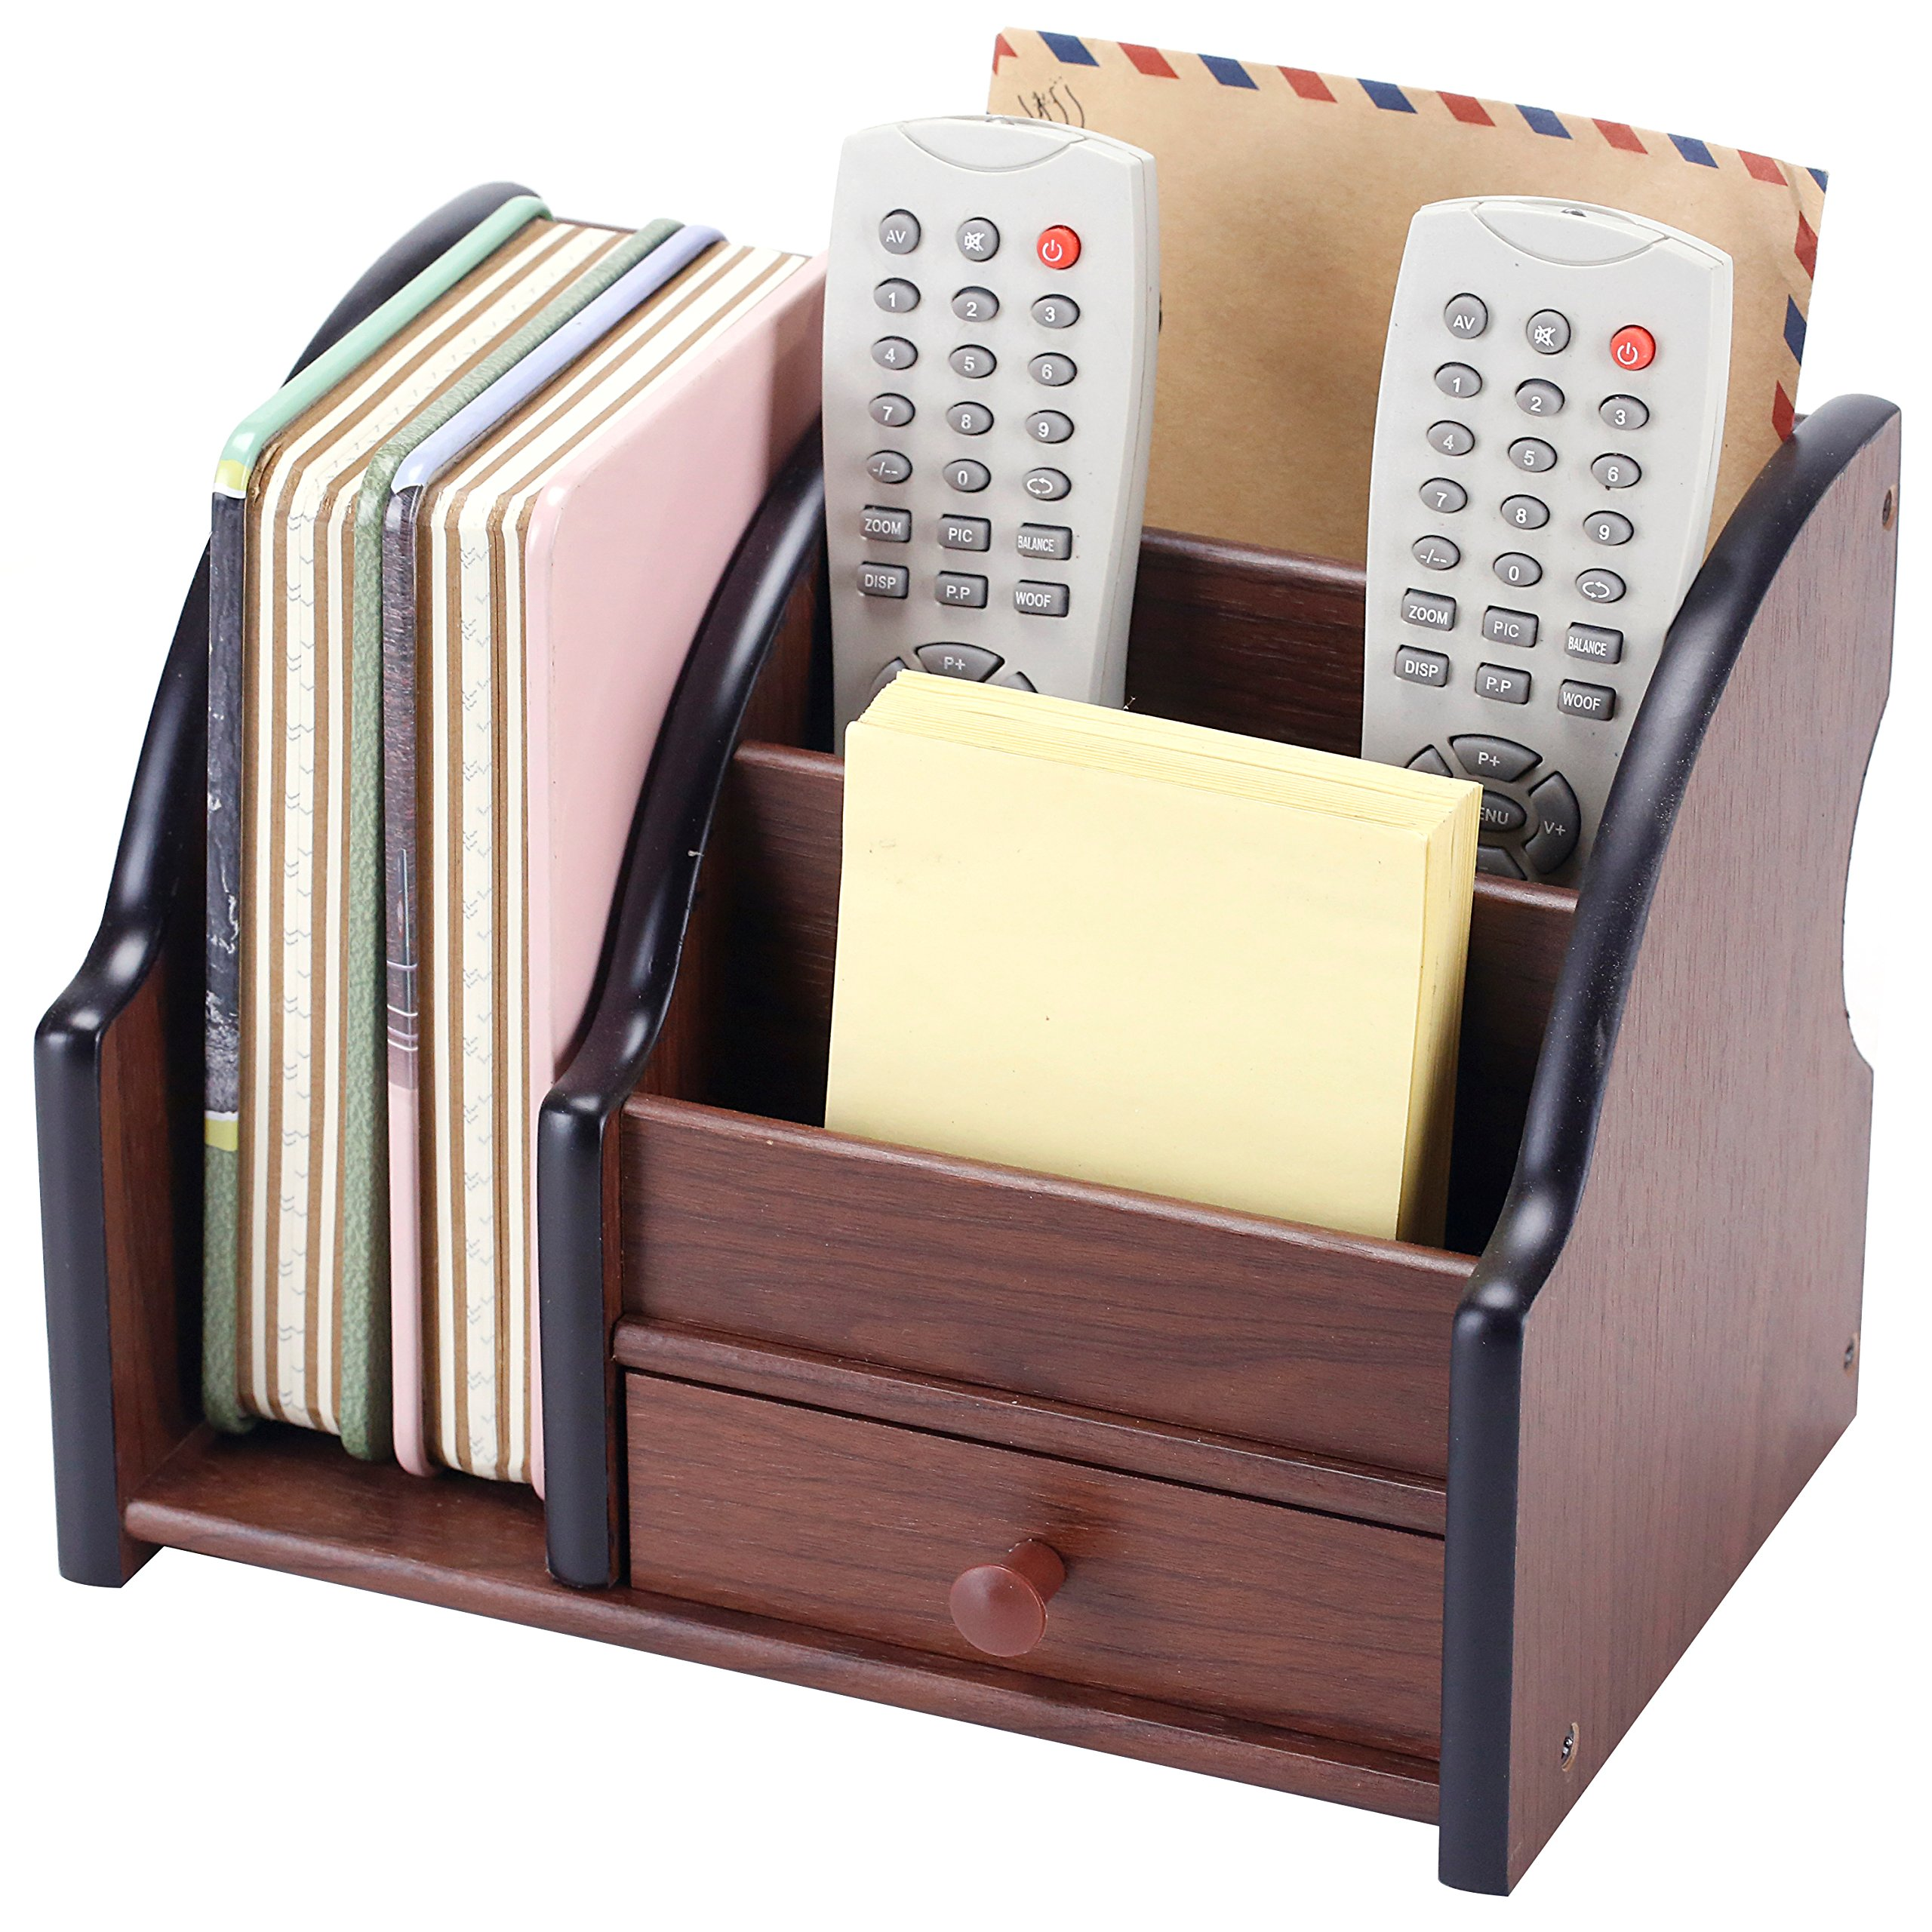 5 Compartment Wood Desktop Office Supply Organizer / Mail Holder Rack with Storage Drawer by MyGift (Image #1)